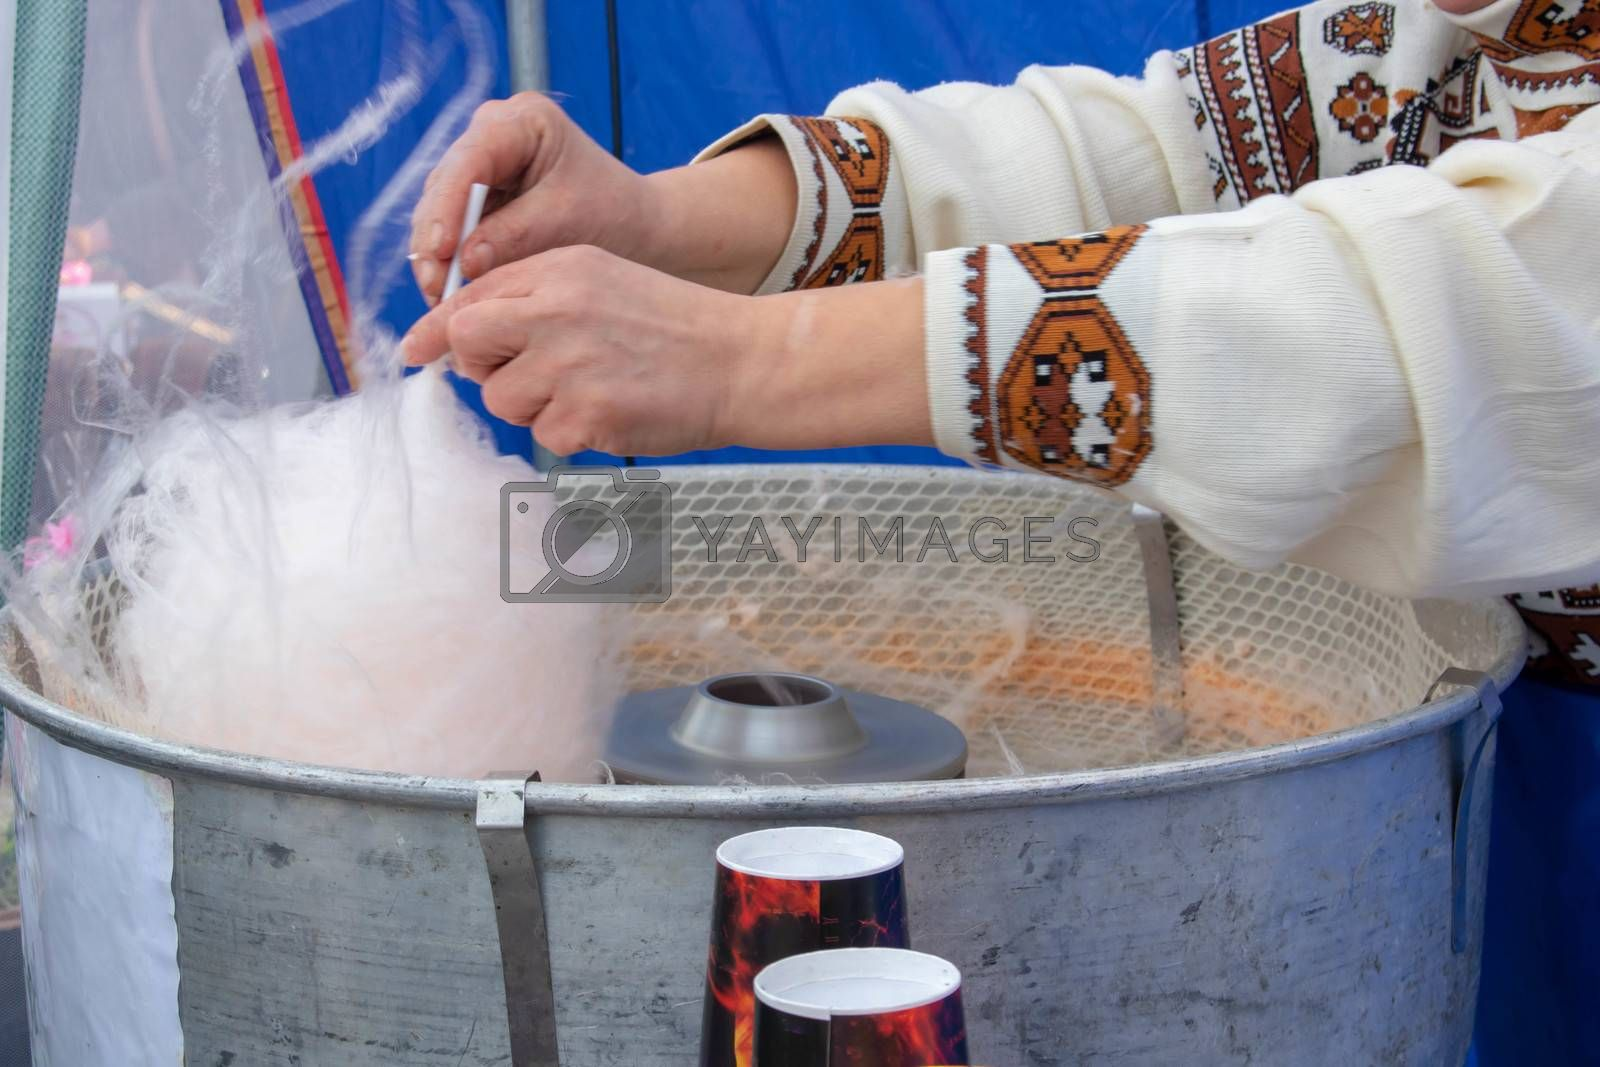 A person in latex gloves making pink cotton candy on a stick